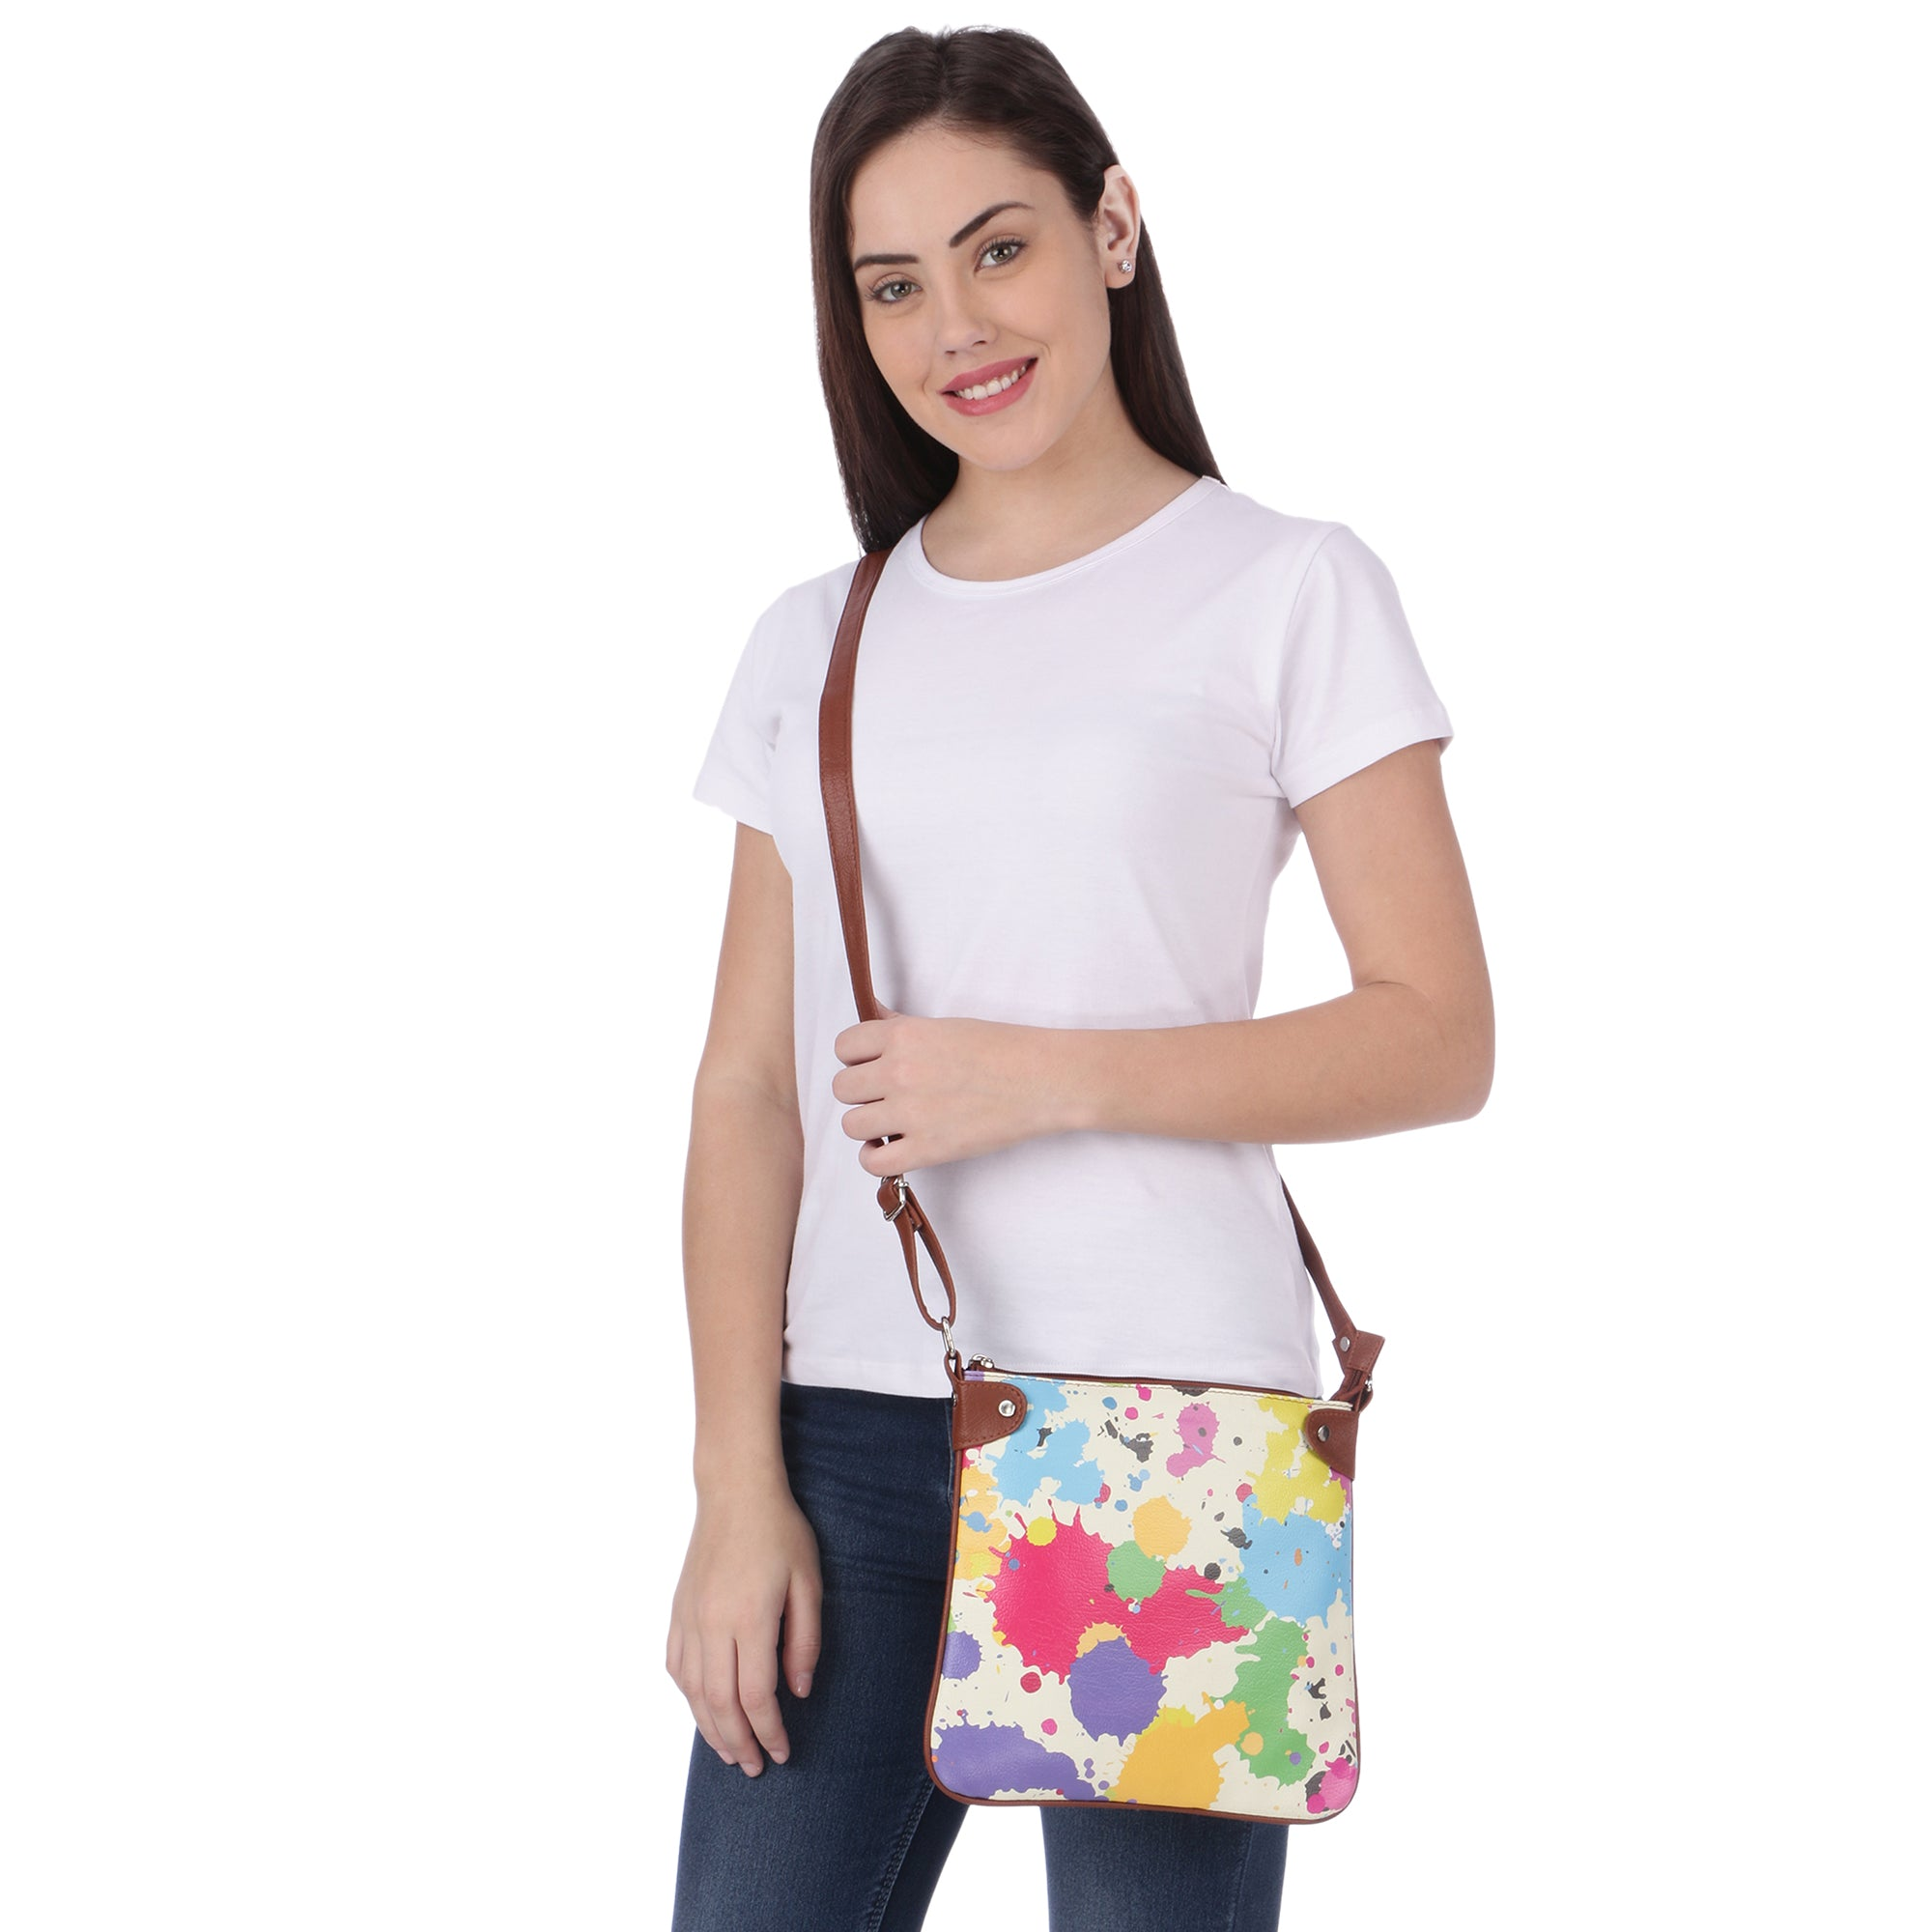 Paint Splash Sling Bag